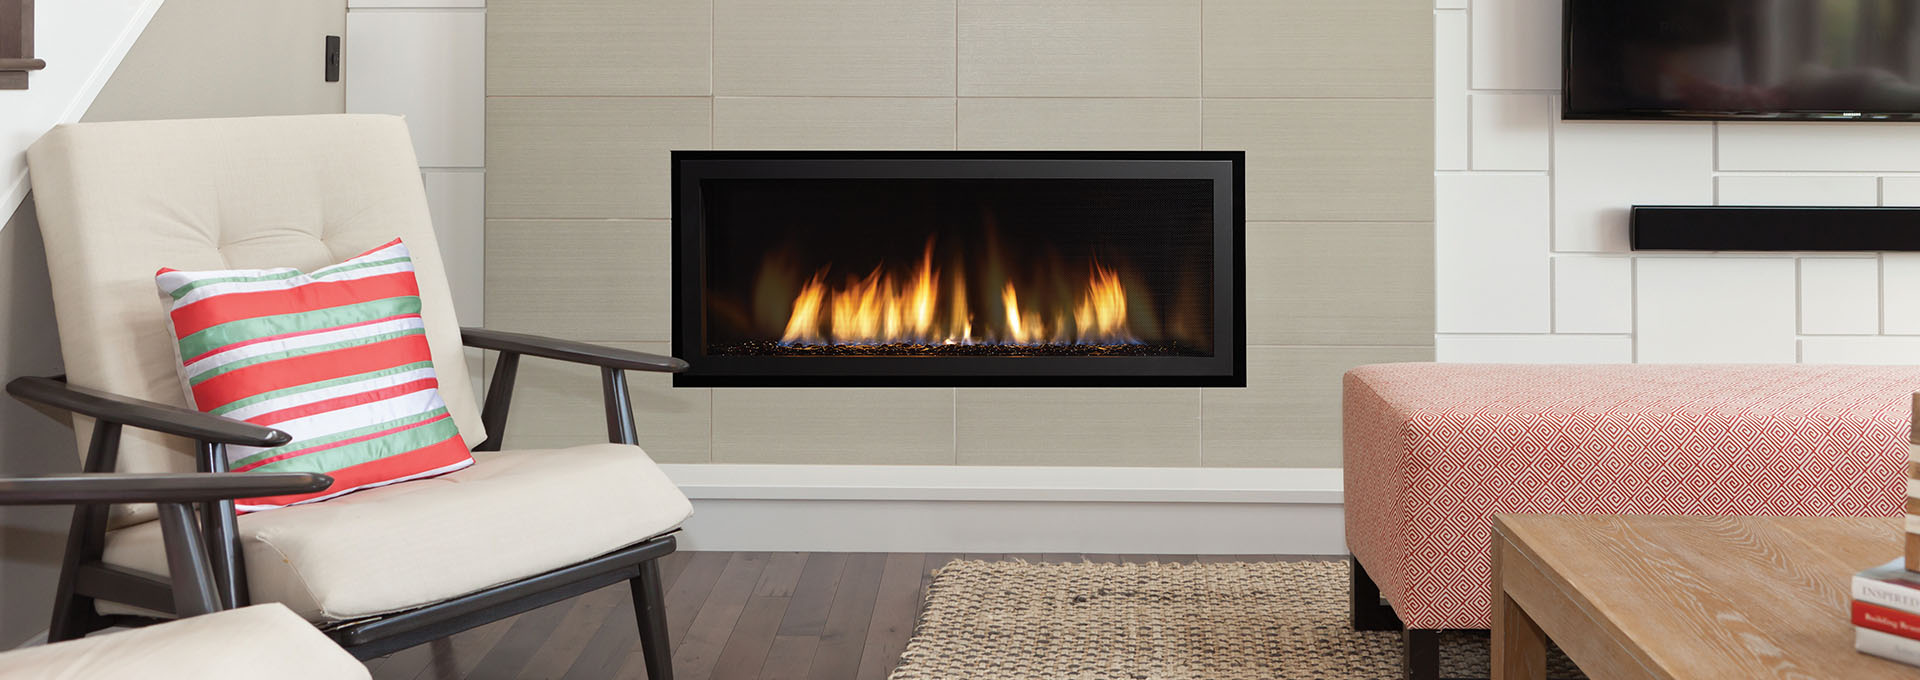 Free Fireplace Insert Gas Fireplace Insert Vs Wood Burning Installation